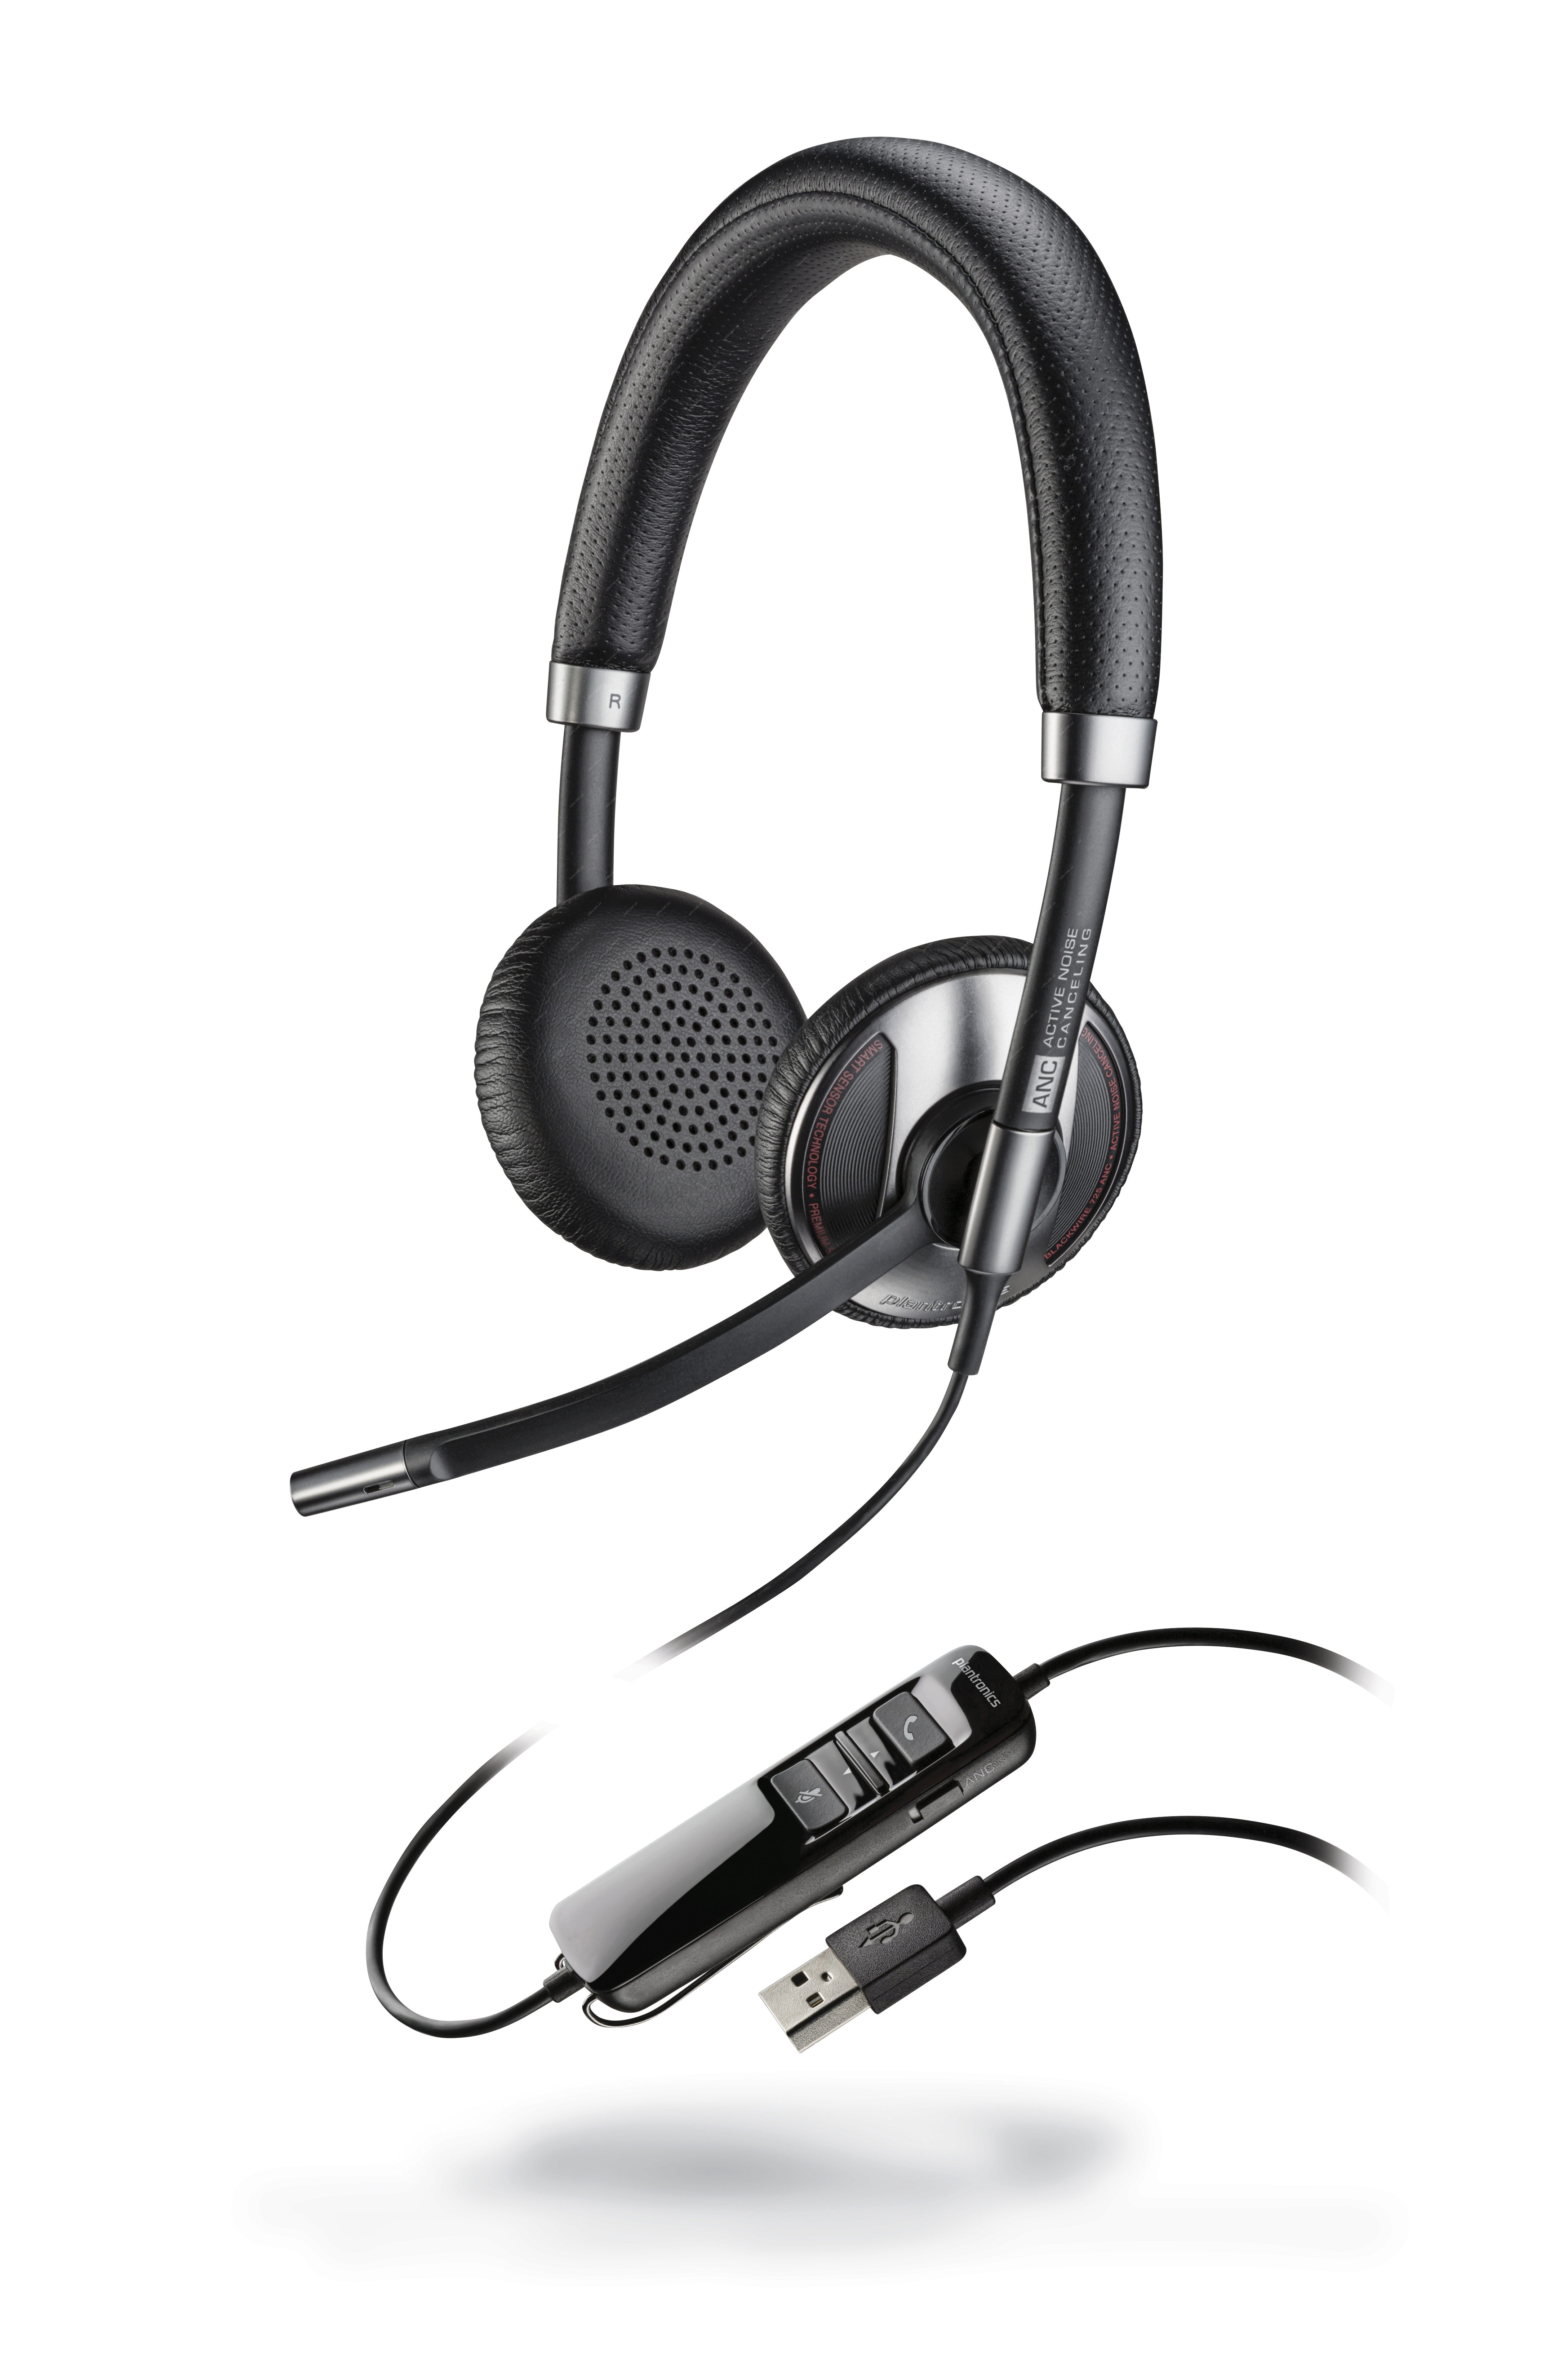 Plantronics Blackwire C725, Duo, USB, MS